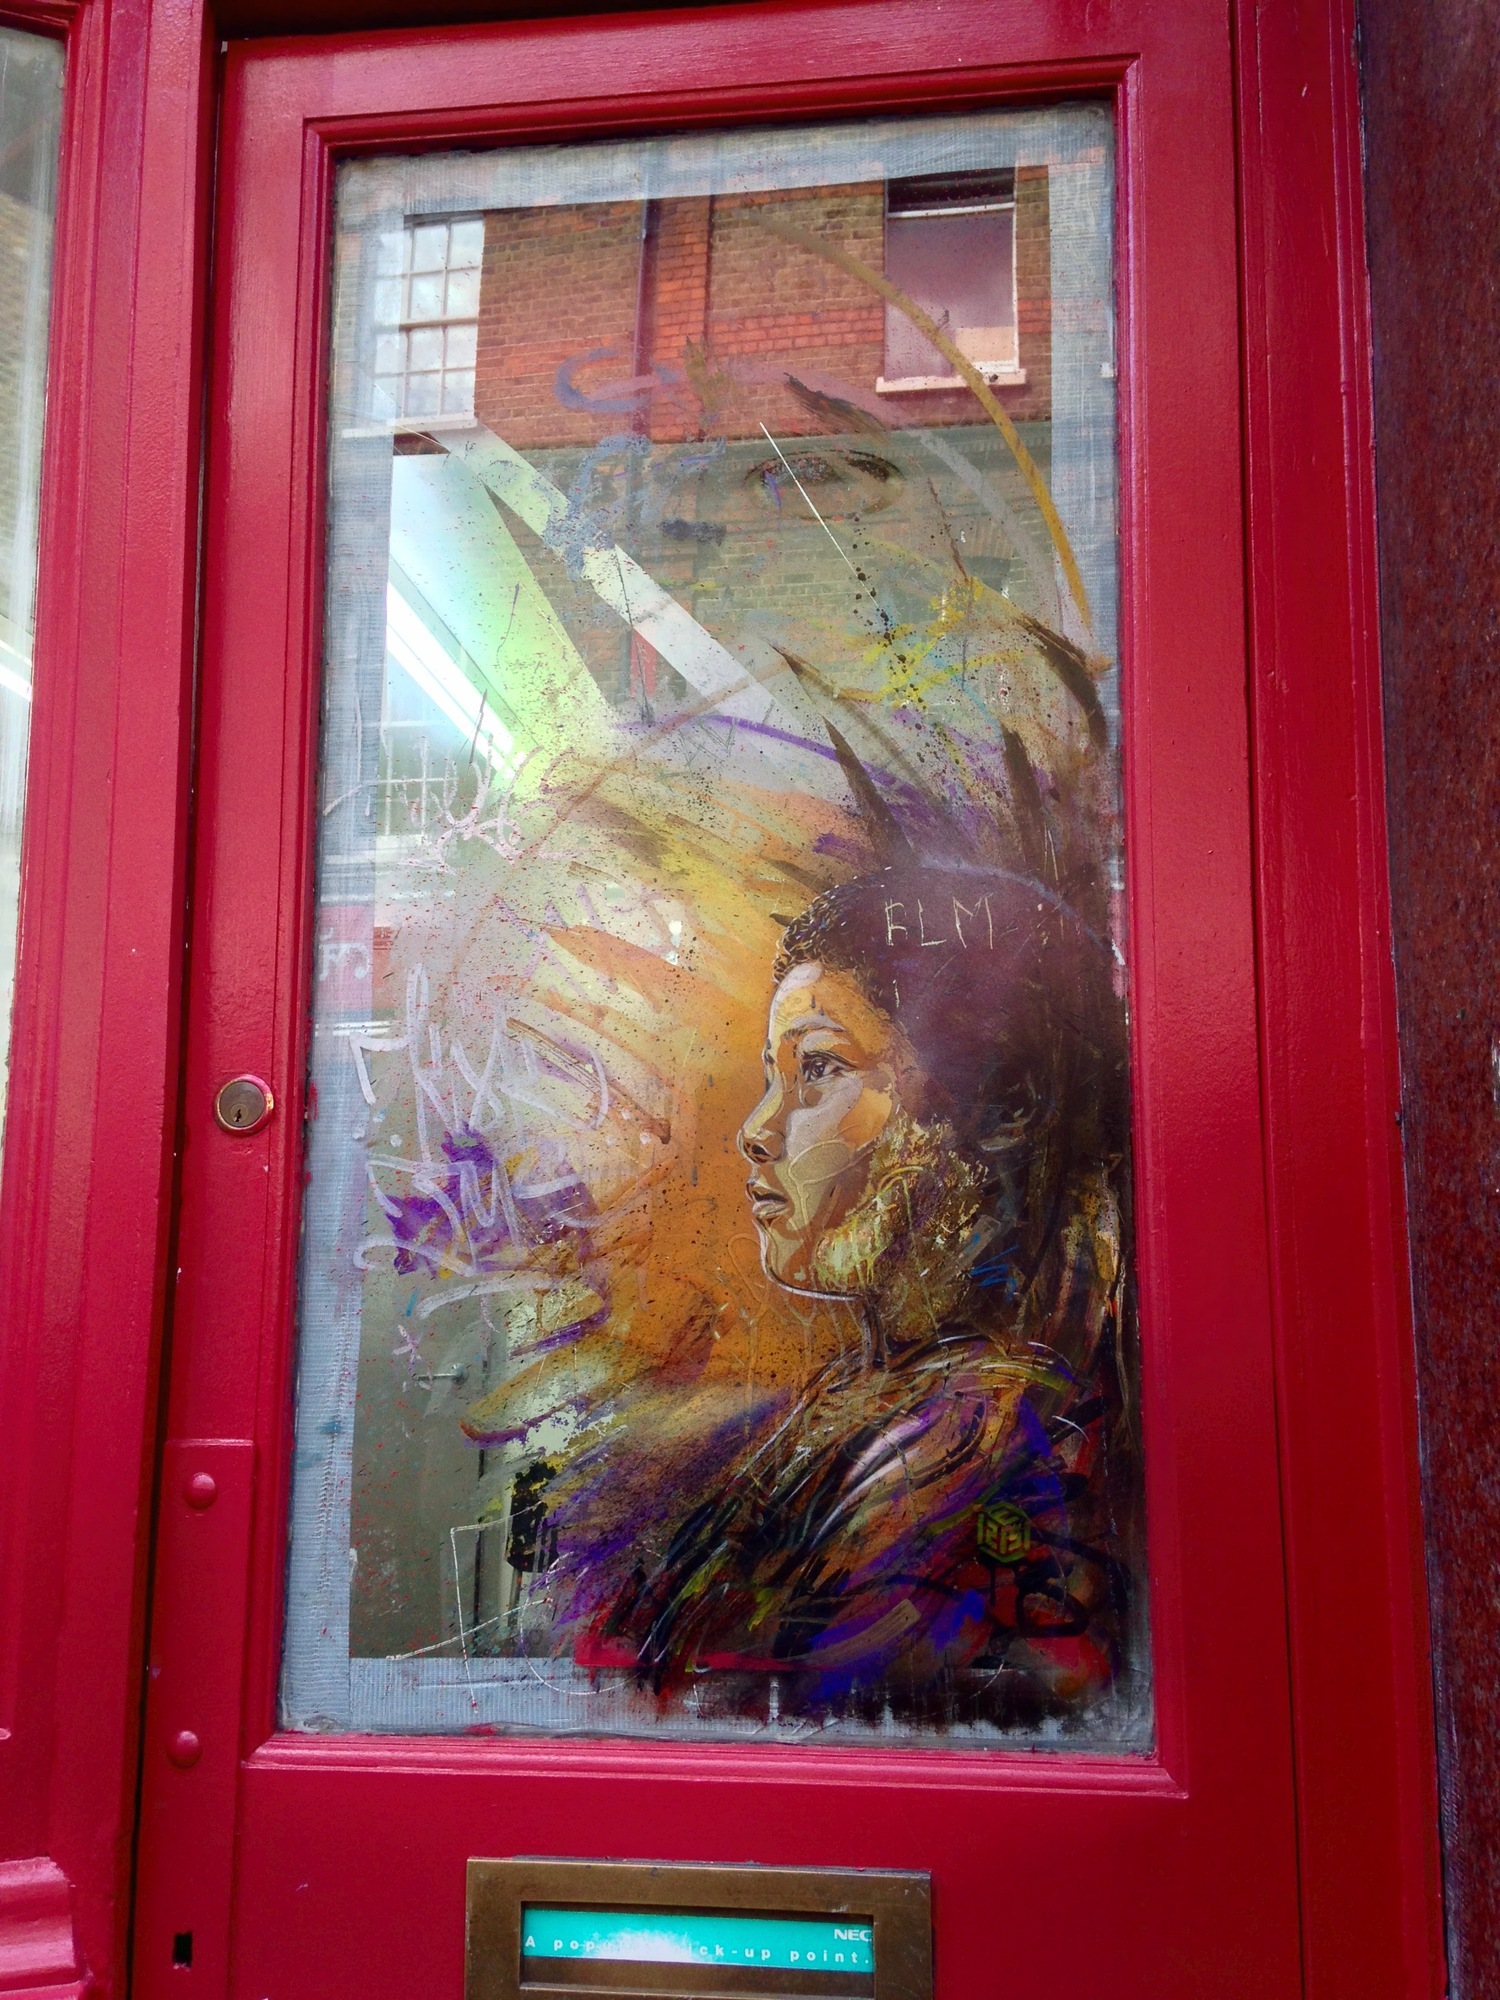 Photo 5: piece by Christian Guemy, also known as C215, on Brick Lane